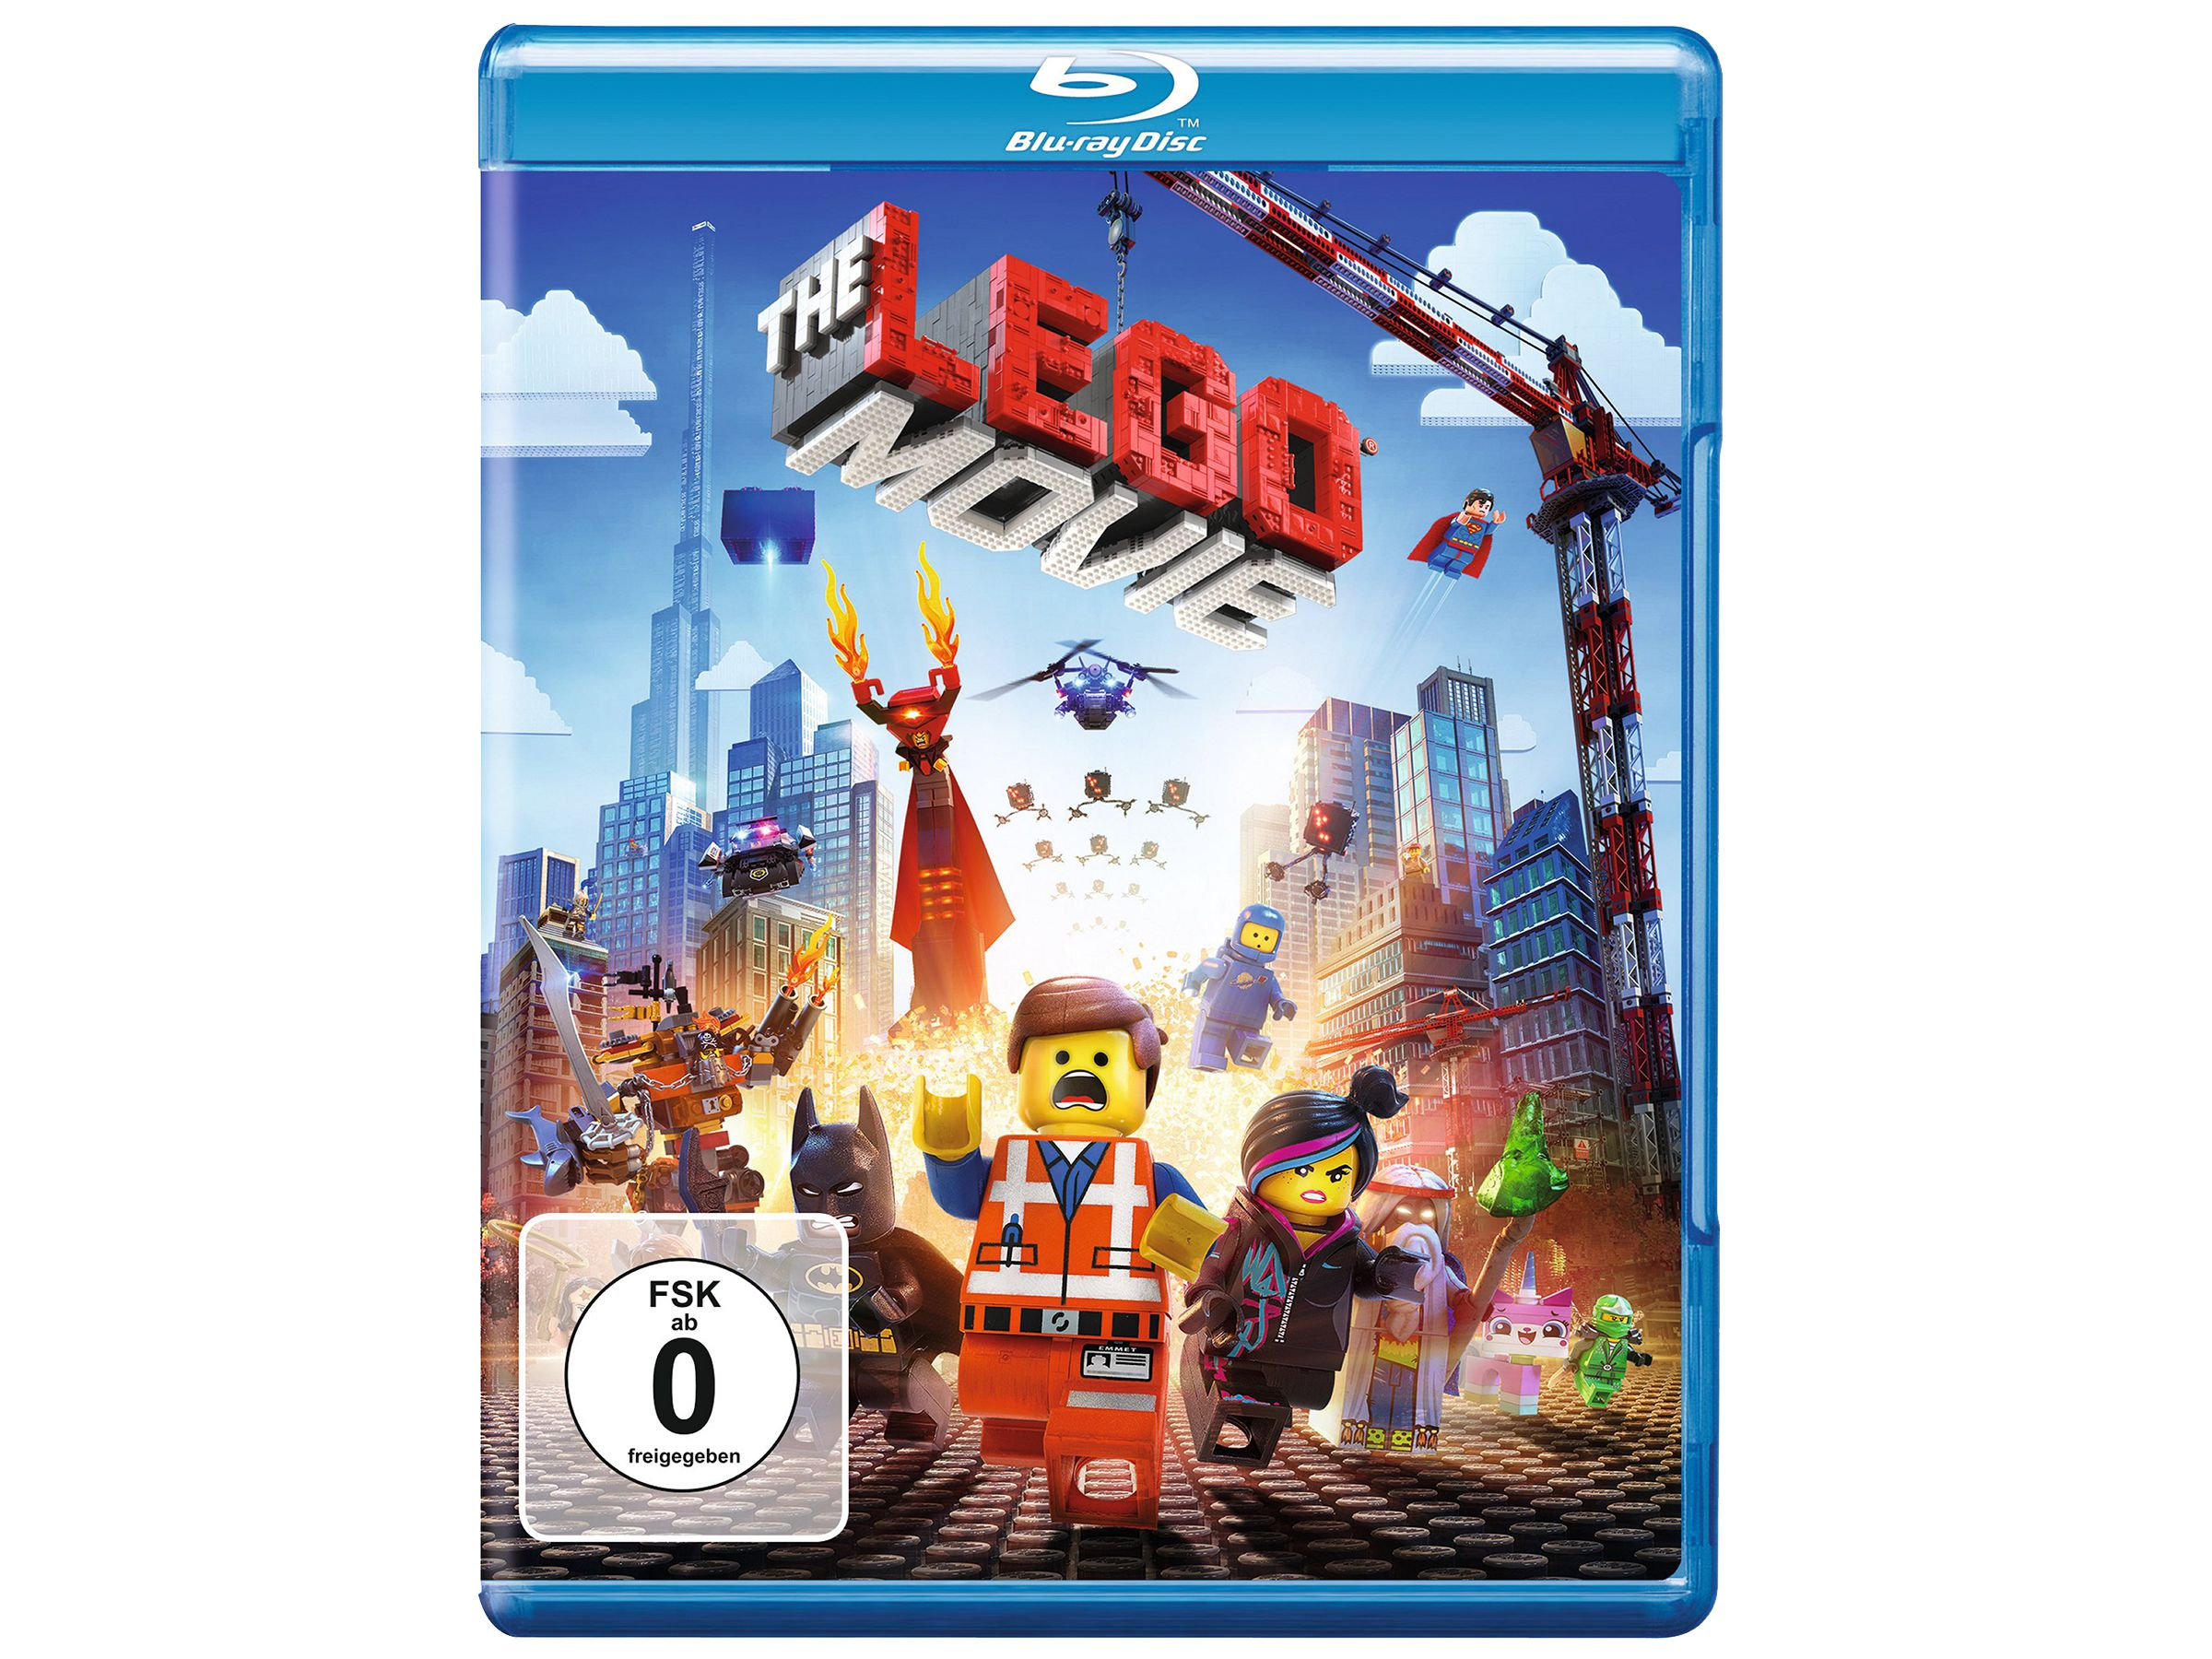 LEGO Film 5004356 The LEGO Movie Blu-ray LEGO_5004356.jpg